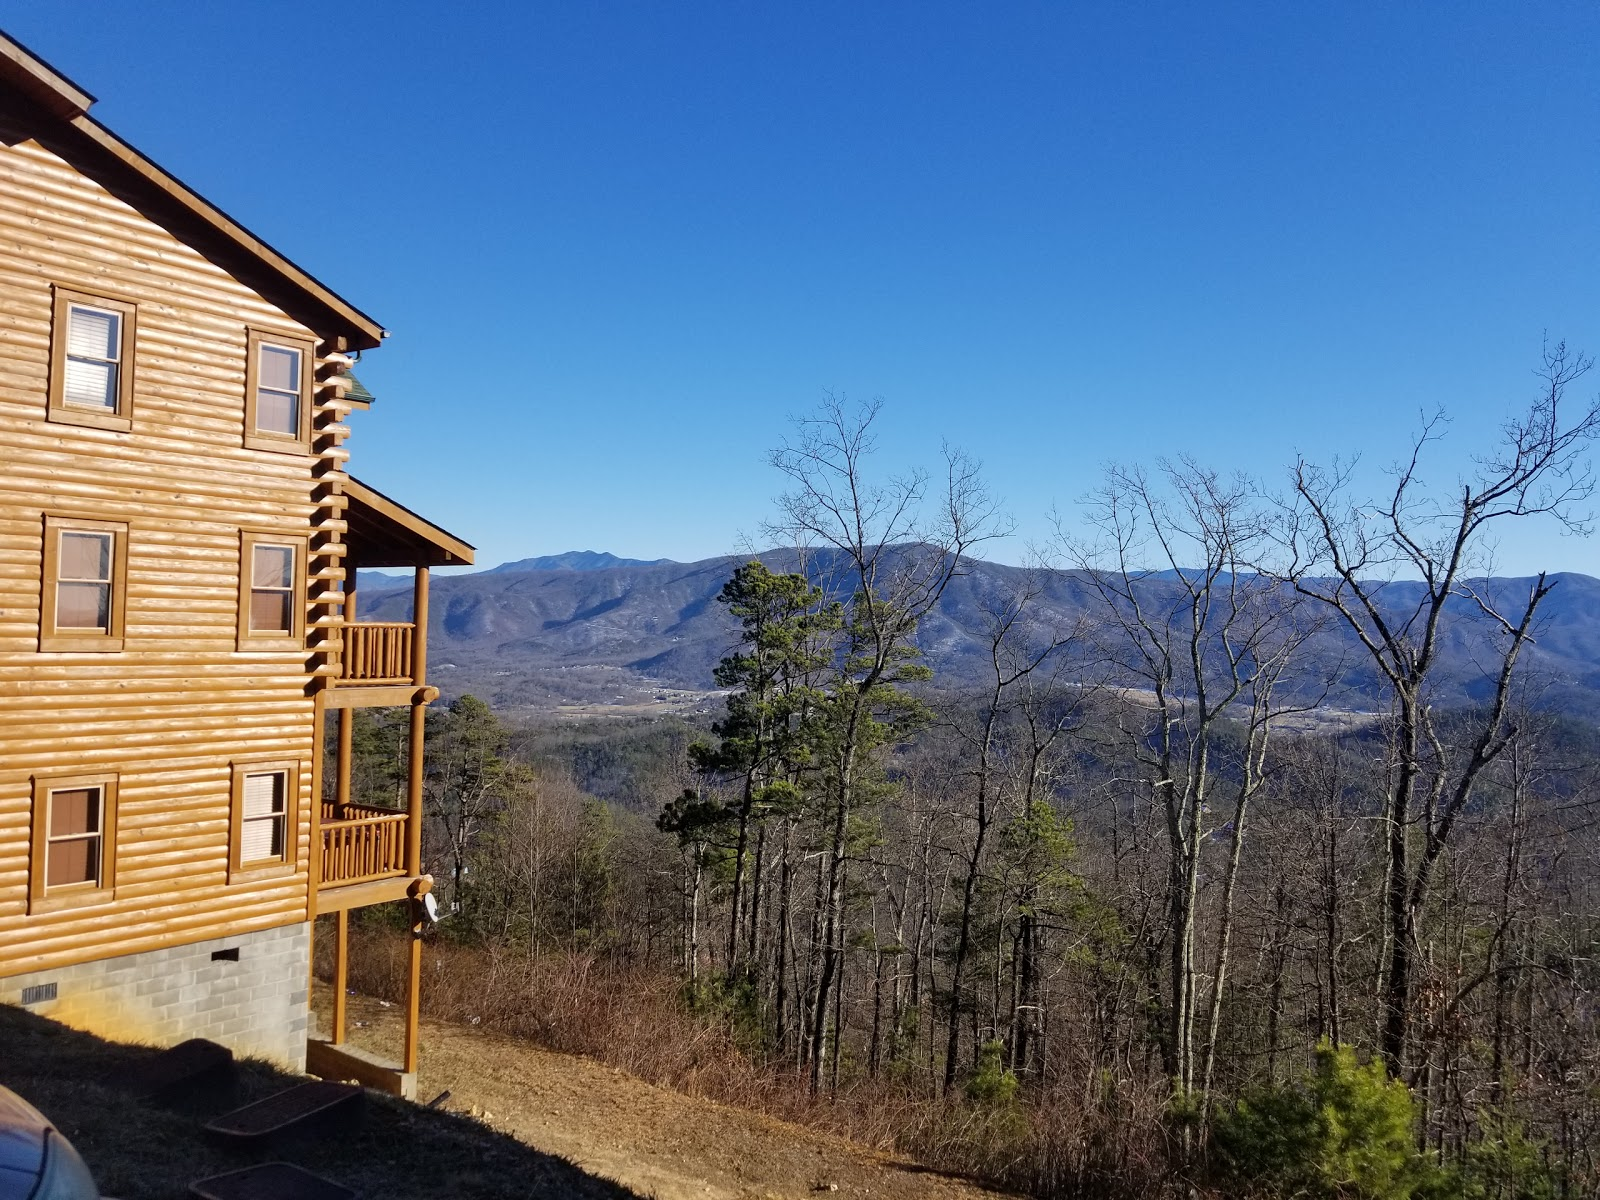 morning view manor map - townsend, tennessee - mapcarta